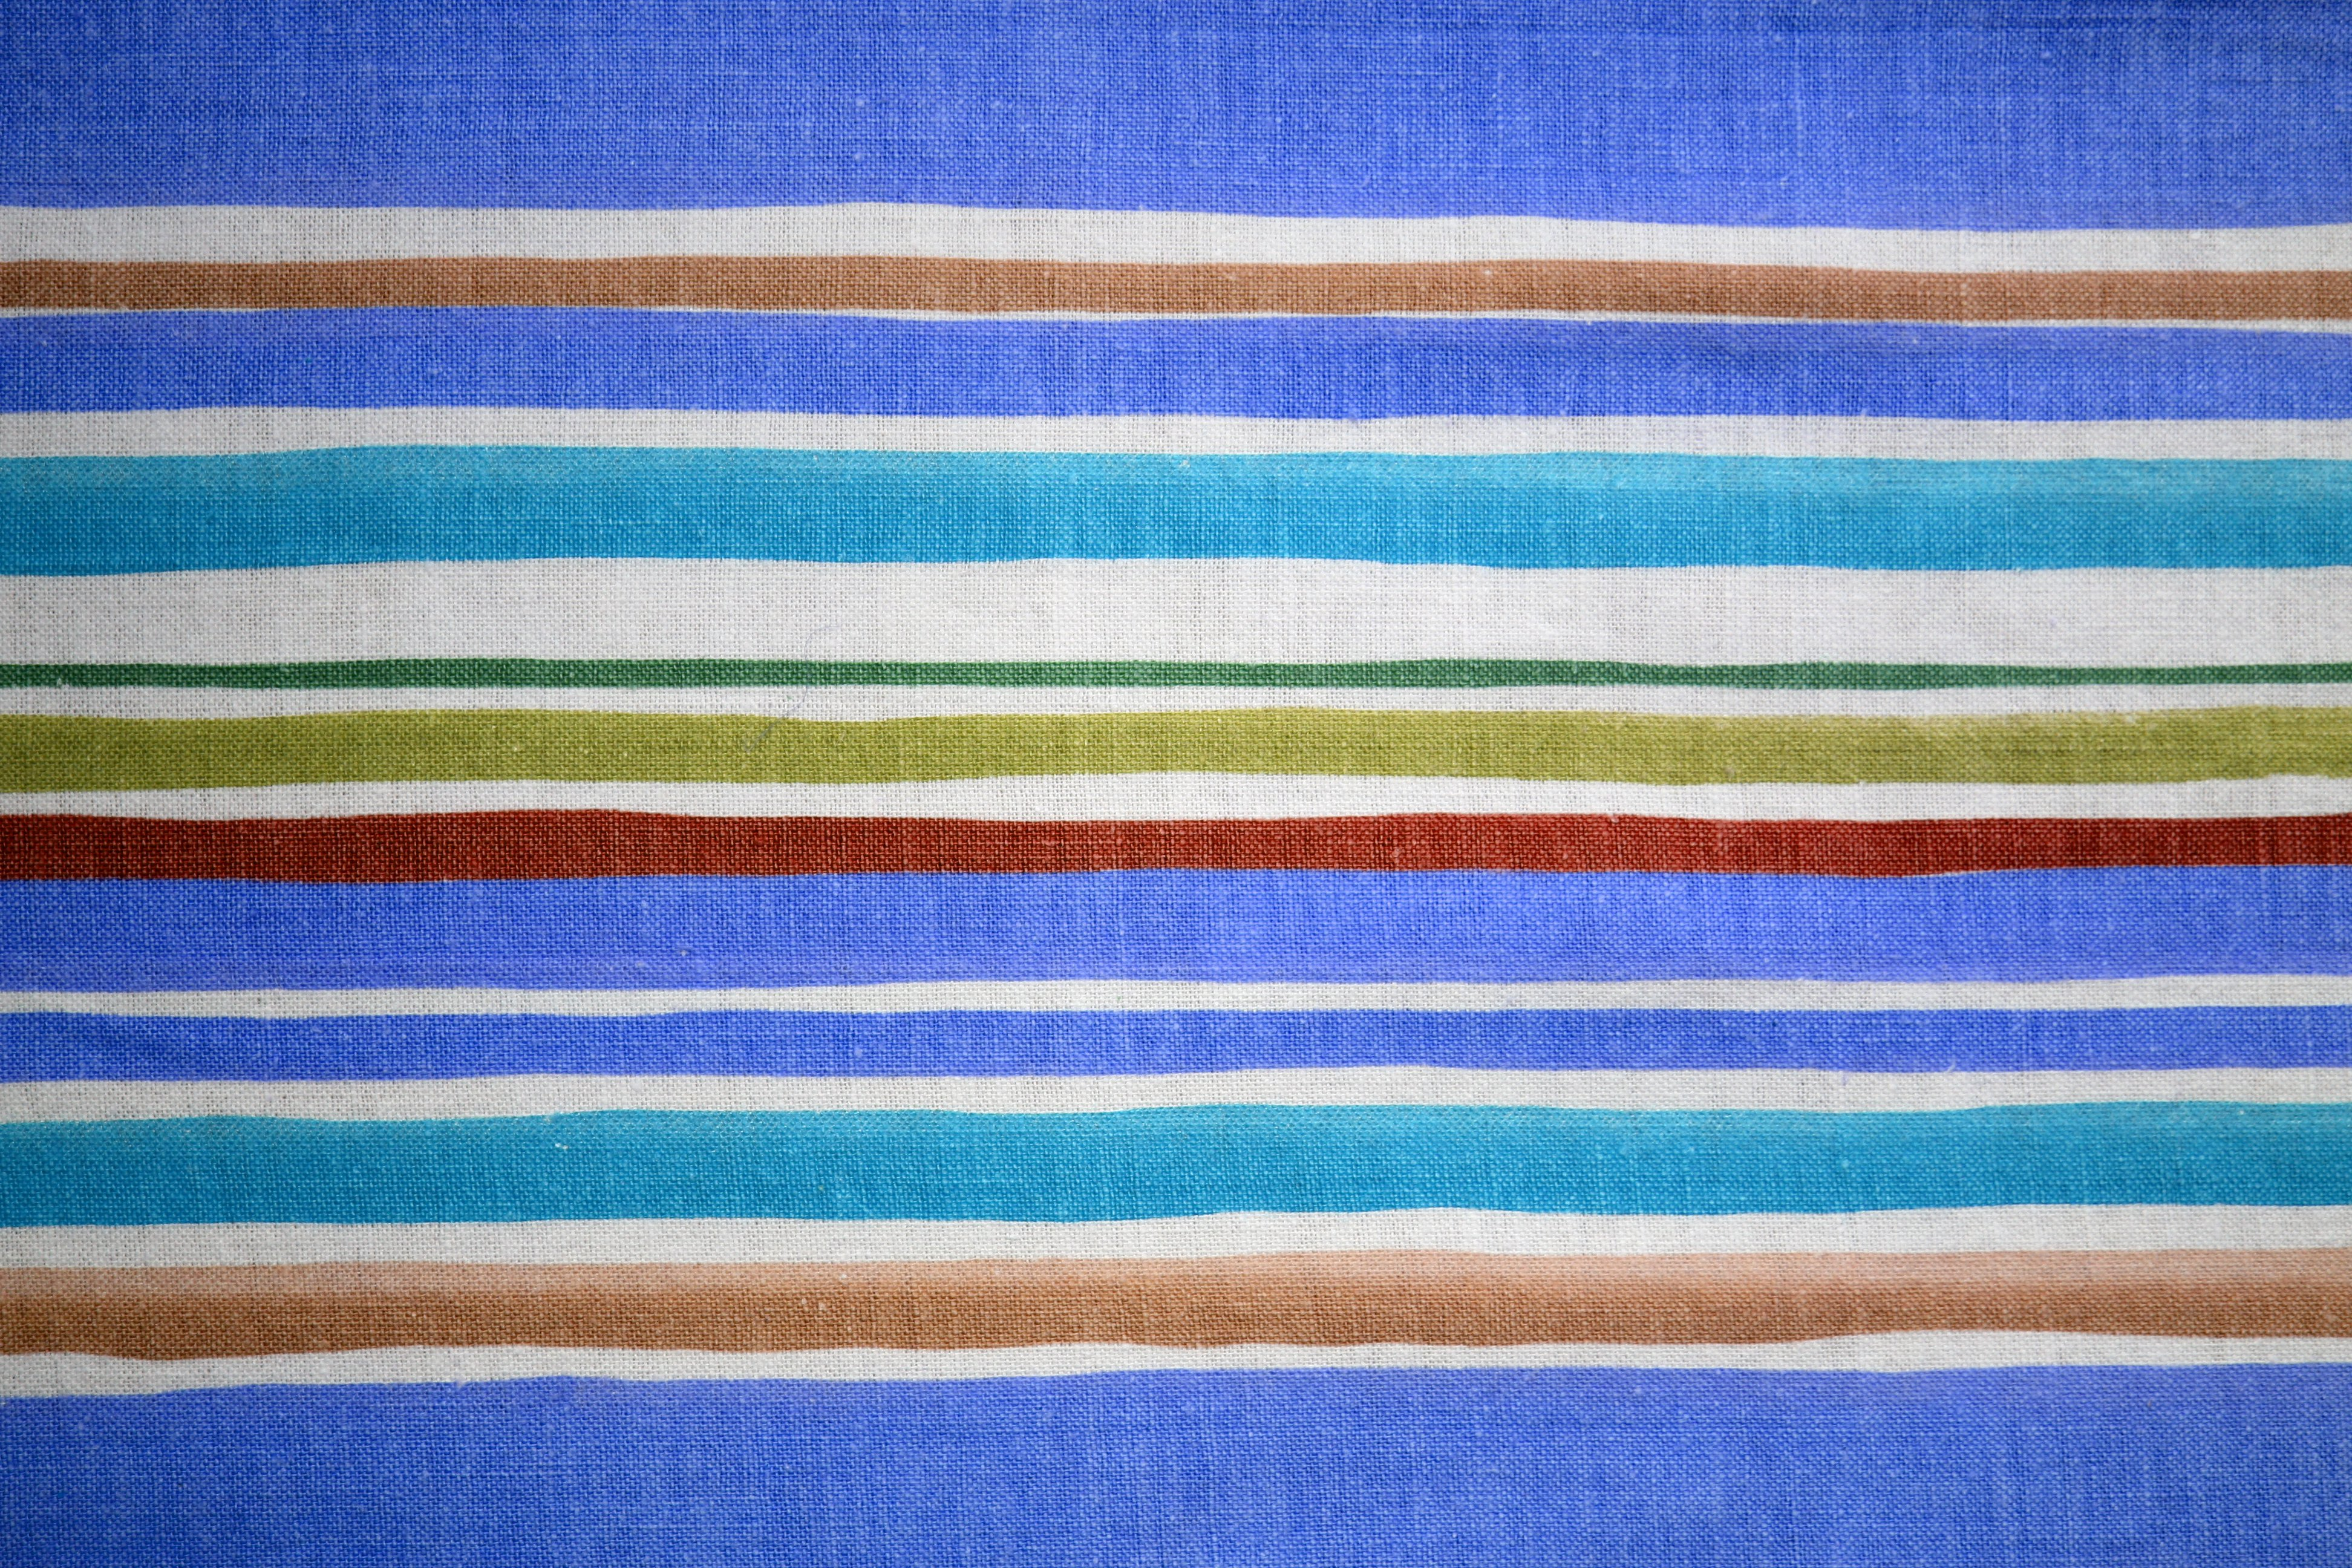 Striped Fabric Texture Blue and Brown Picture | Free Photograph ...